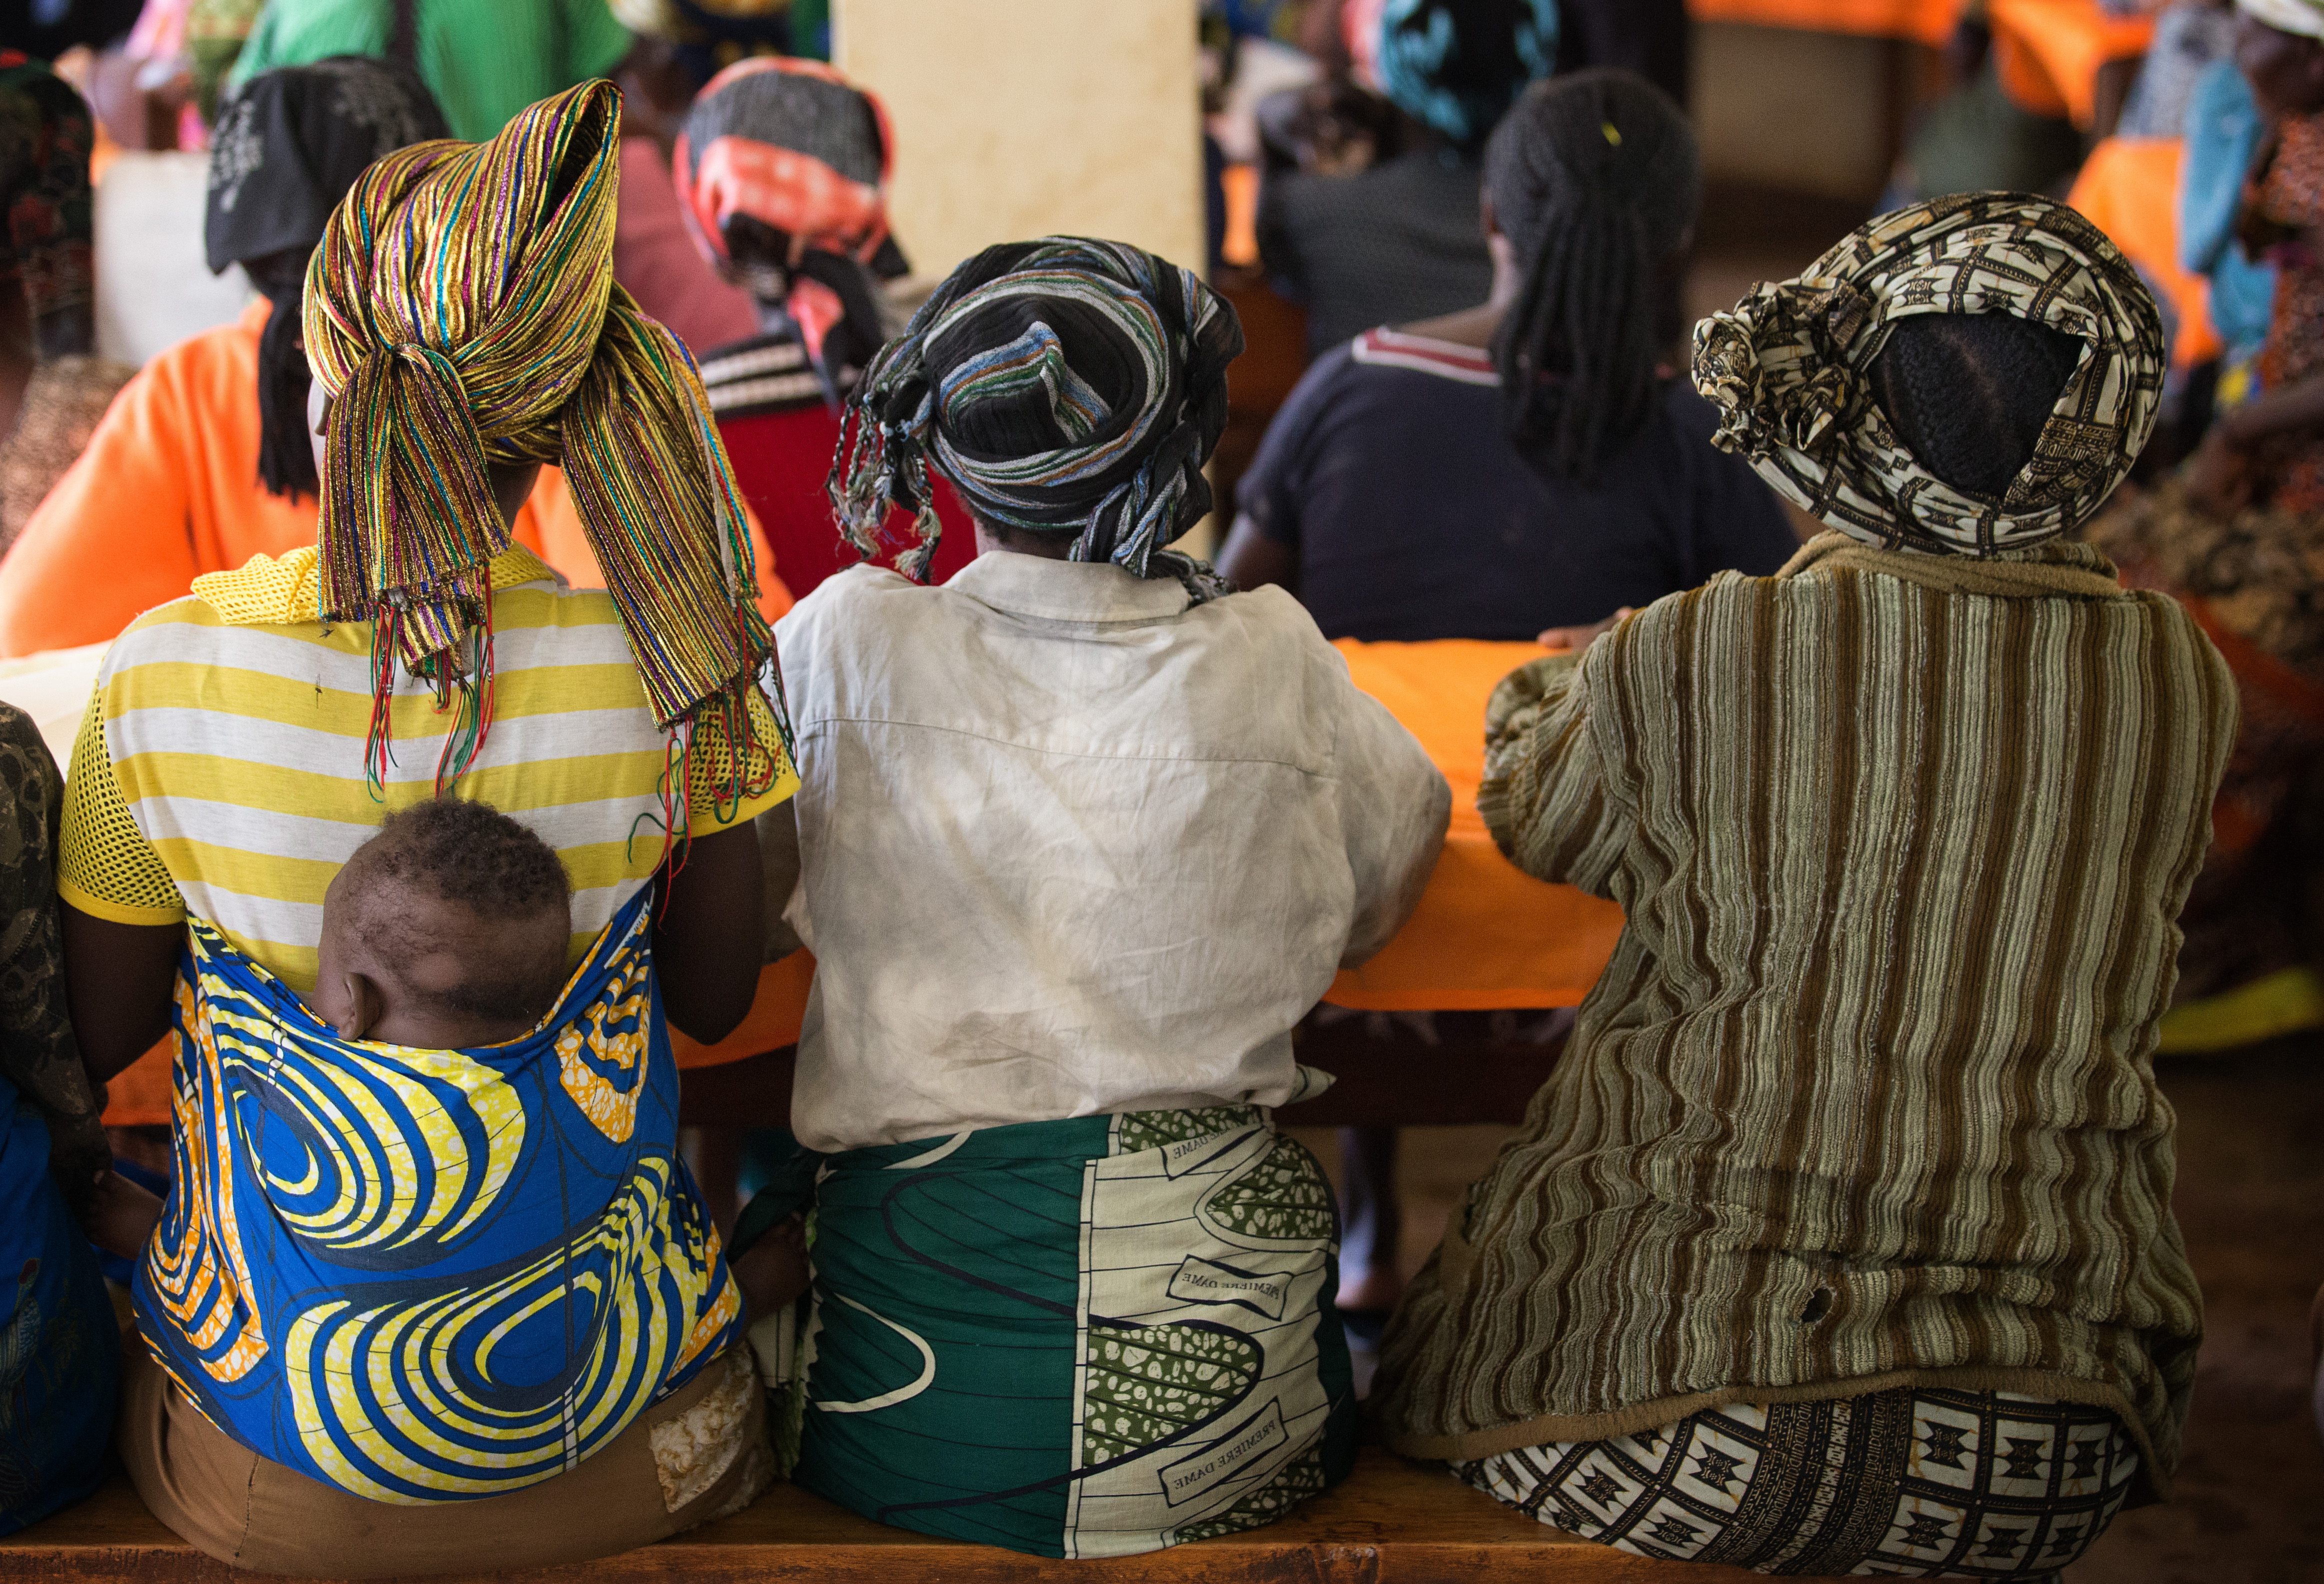 Panzi Hospital in Bukavu, Democratic Republic of Congo, cares for women who are survivors of sexual assault. Photo by Mike DuBose, UMNS